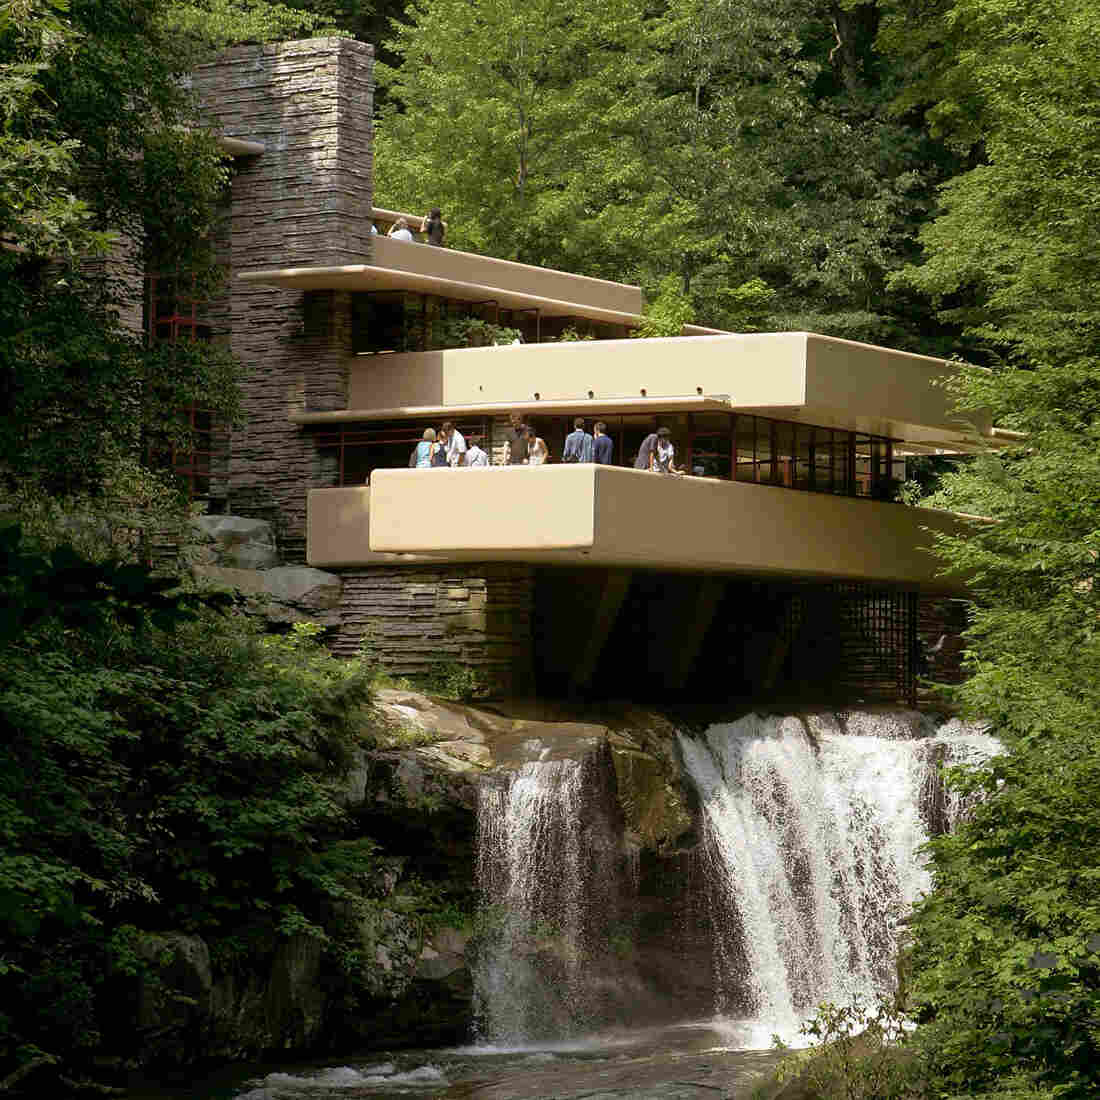 Frank Lloyd Wright buildings added to World Heritage list